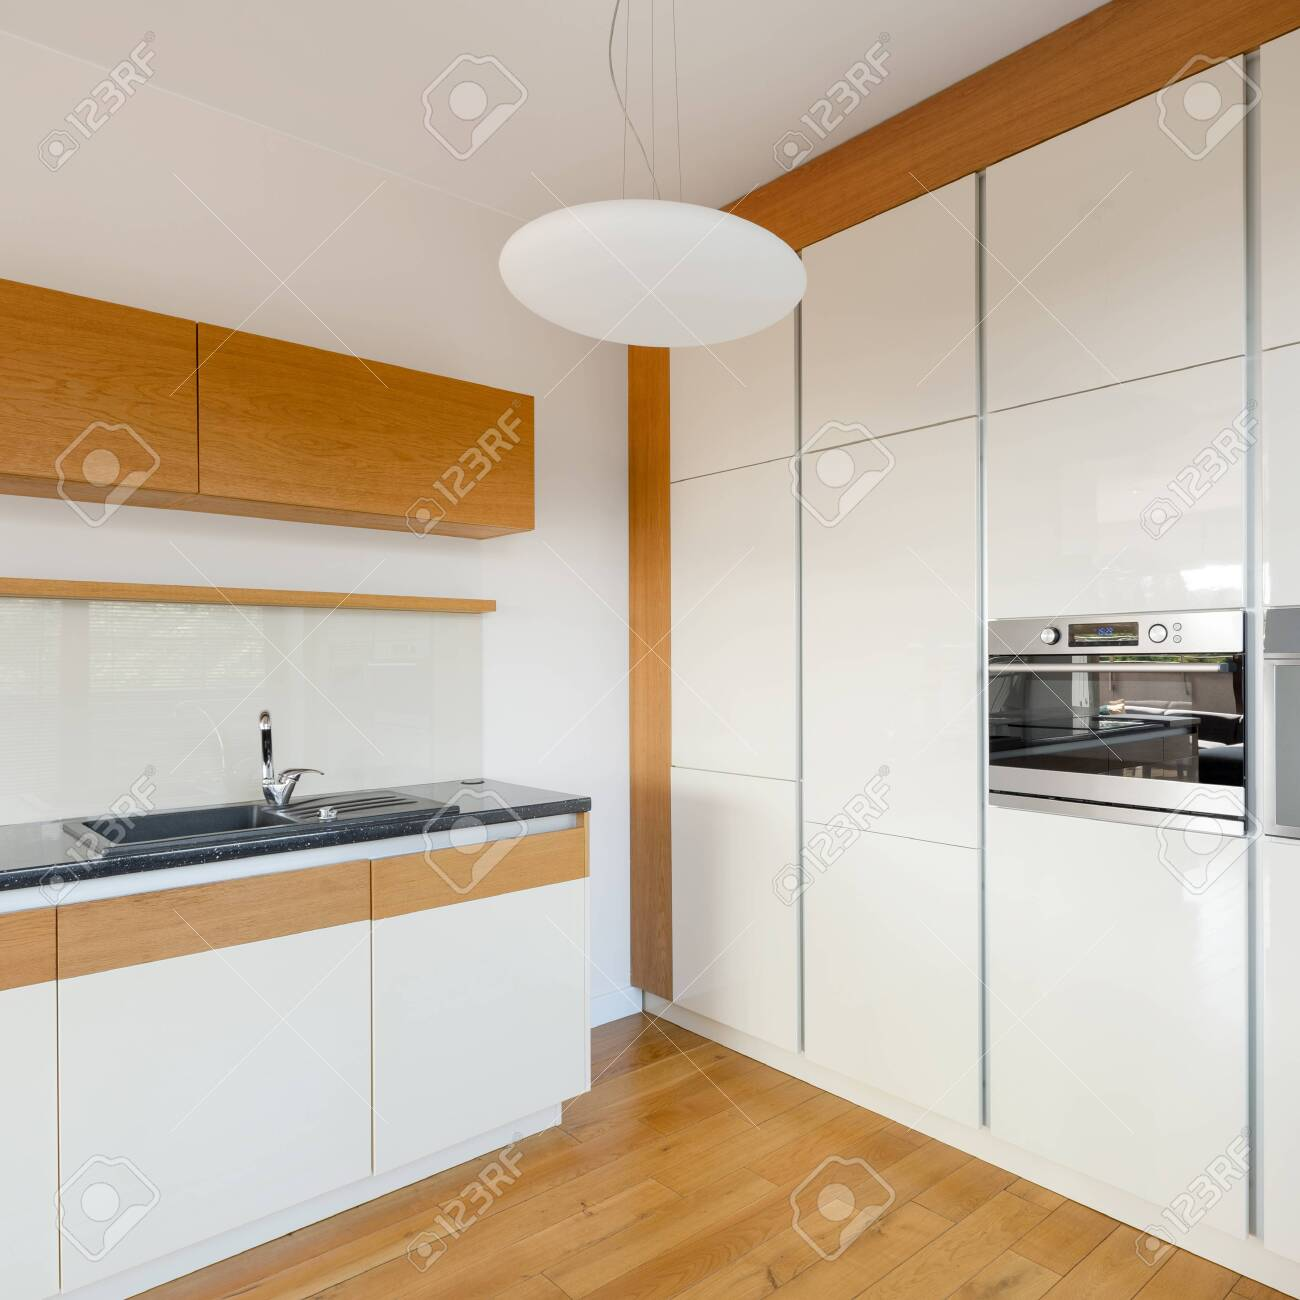 Modern white kitchen with stylish wooden floor, cupboards and..